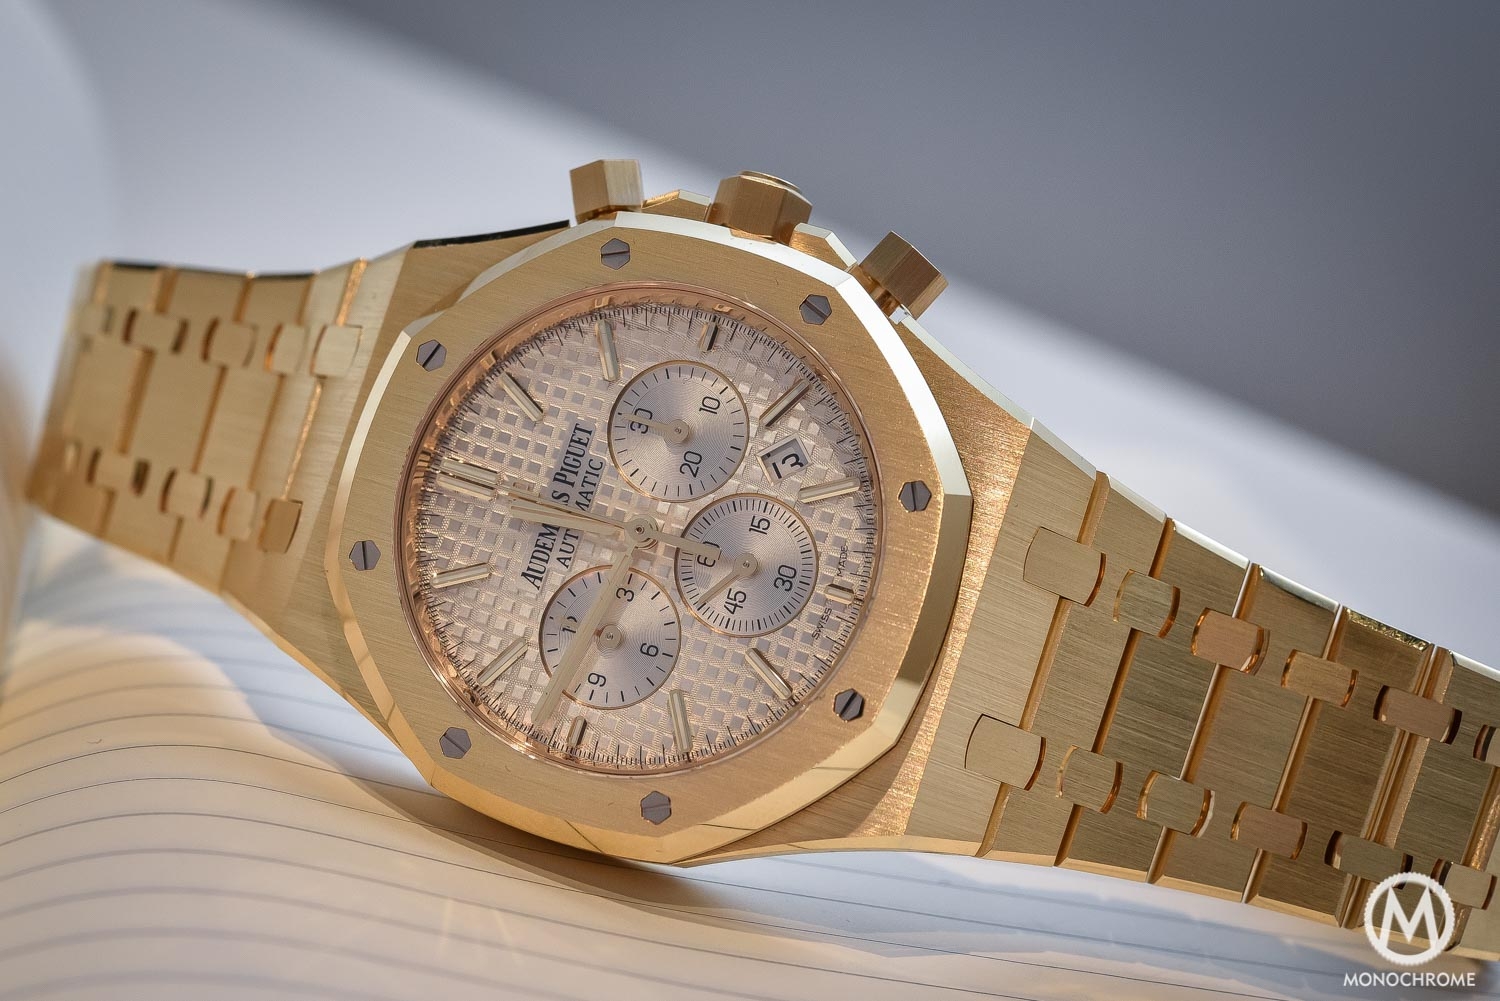 ab00fec1d55 Audemars Piguet Royal Oak Chronograph 26320 yellow gold white dial - SIHH  2016